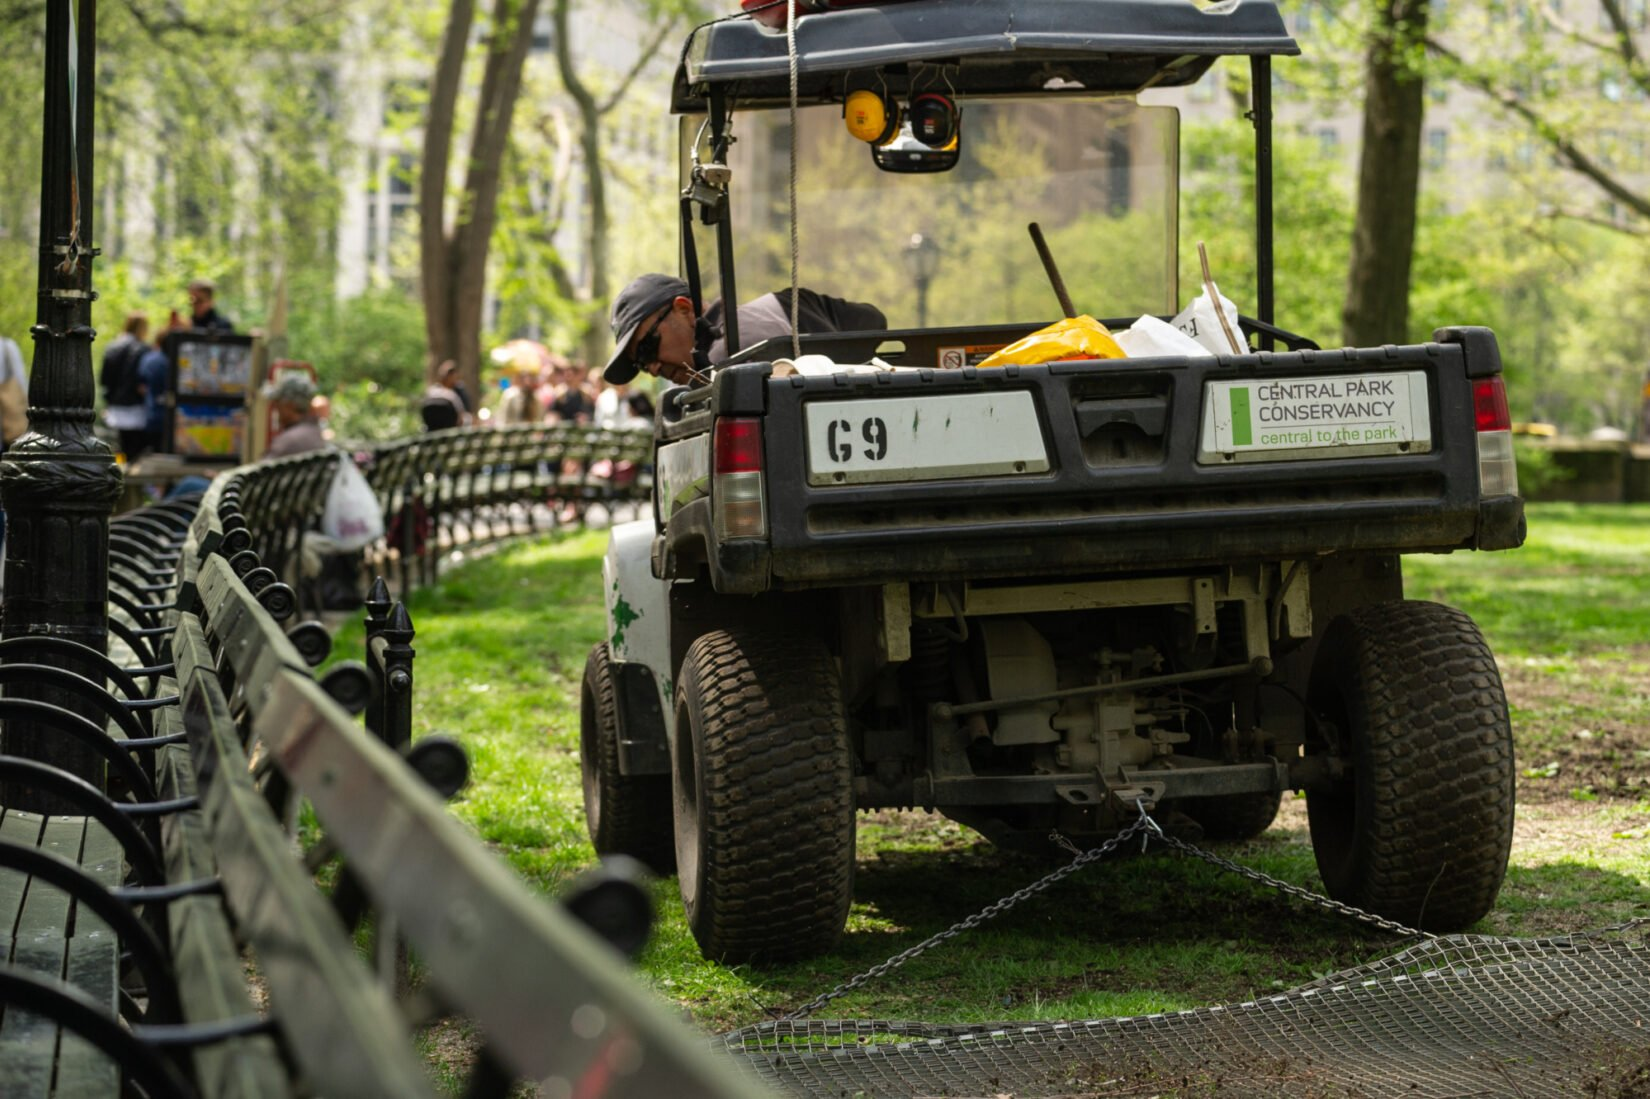 A Conservancy staff member peers out of an electric utility vehicle at a curving row of park benches.